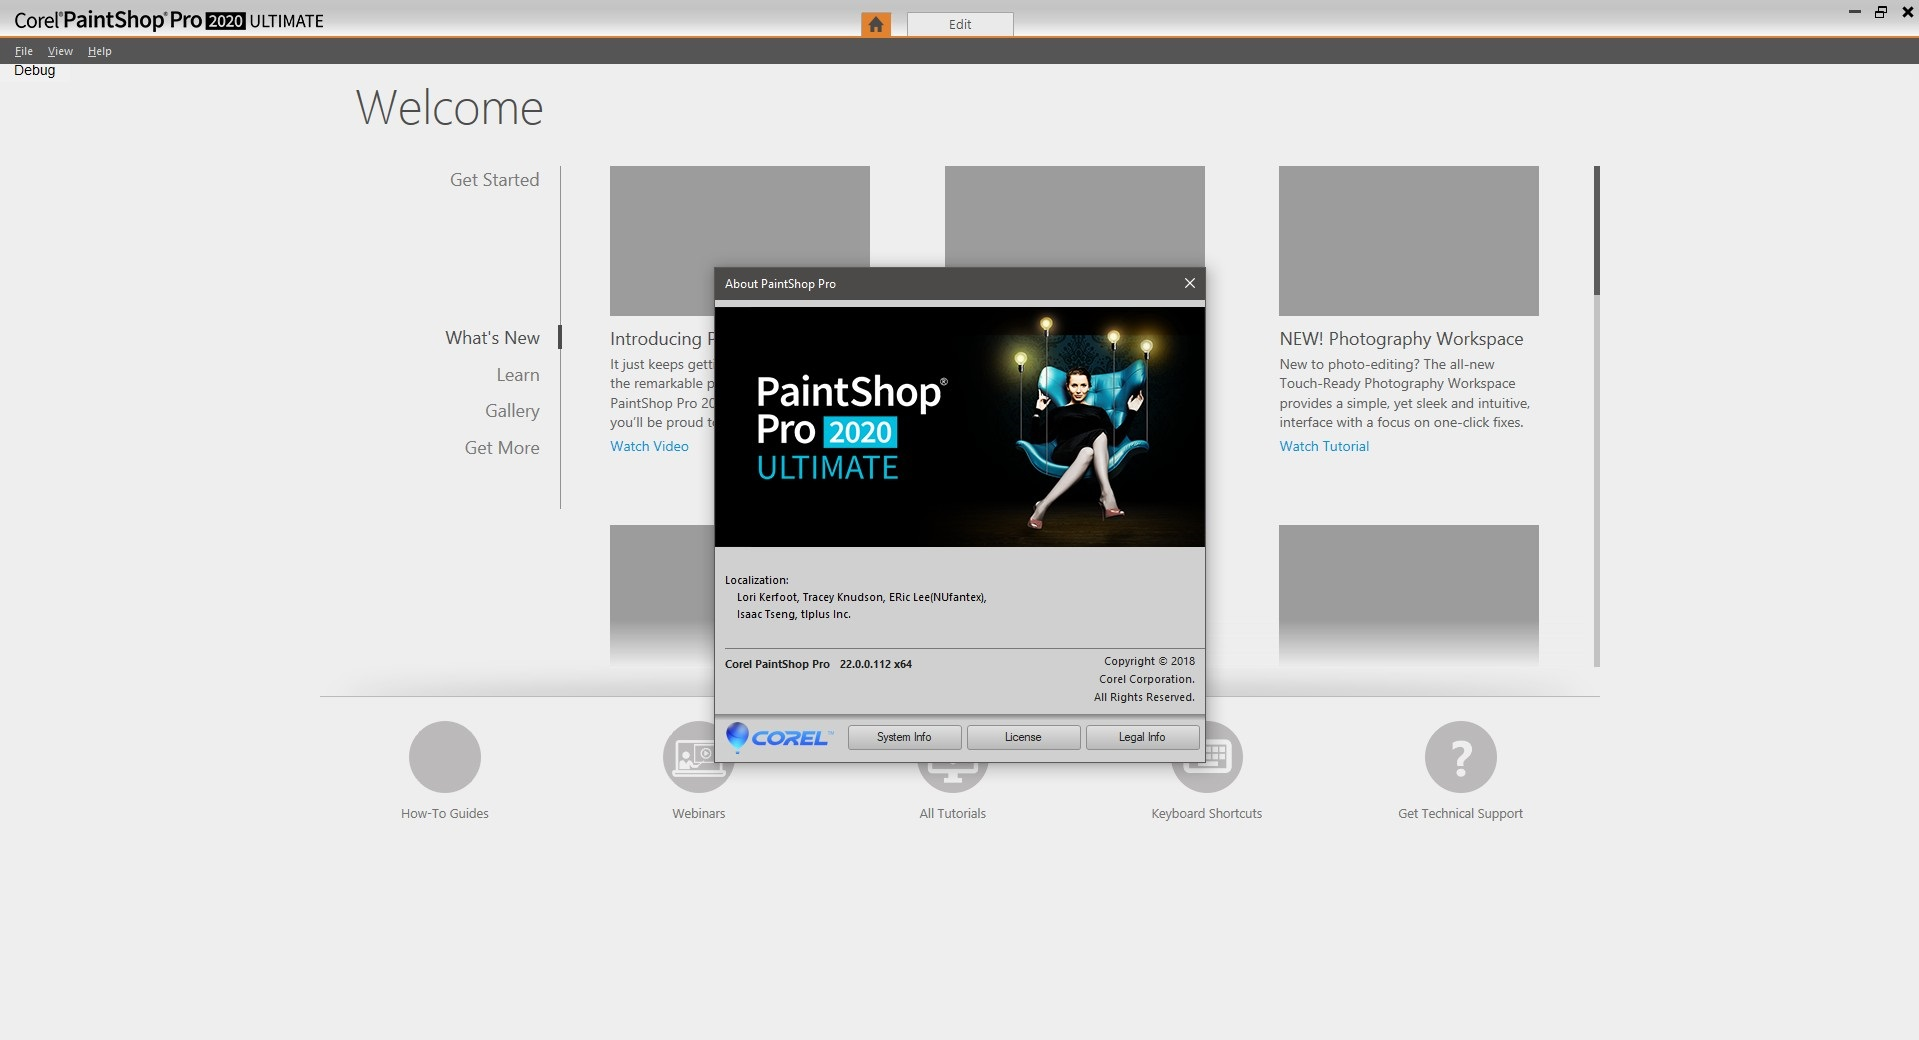 Free Download for Windows PC Corel PaintShop Pro Ultimate 2020